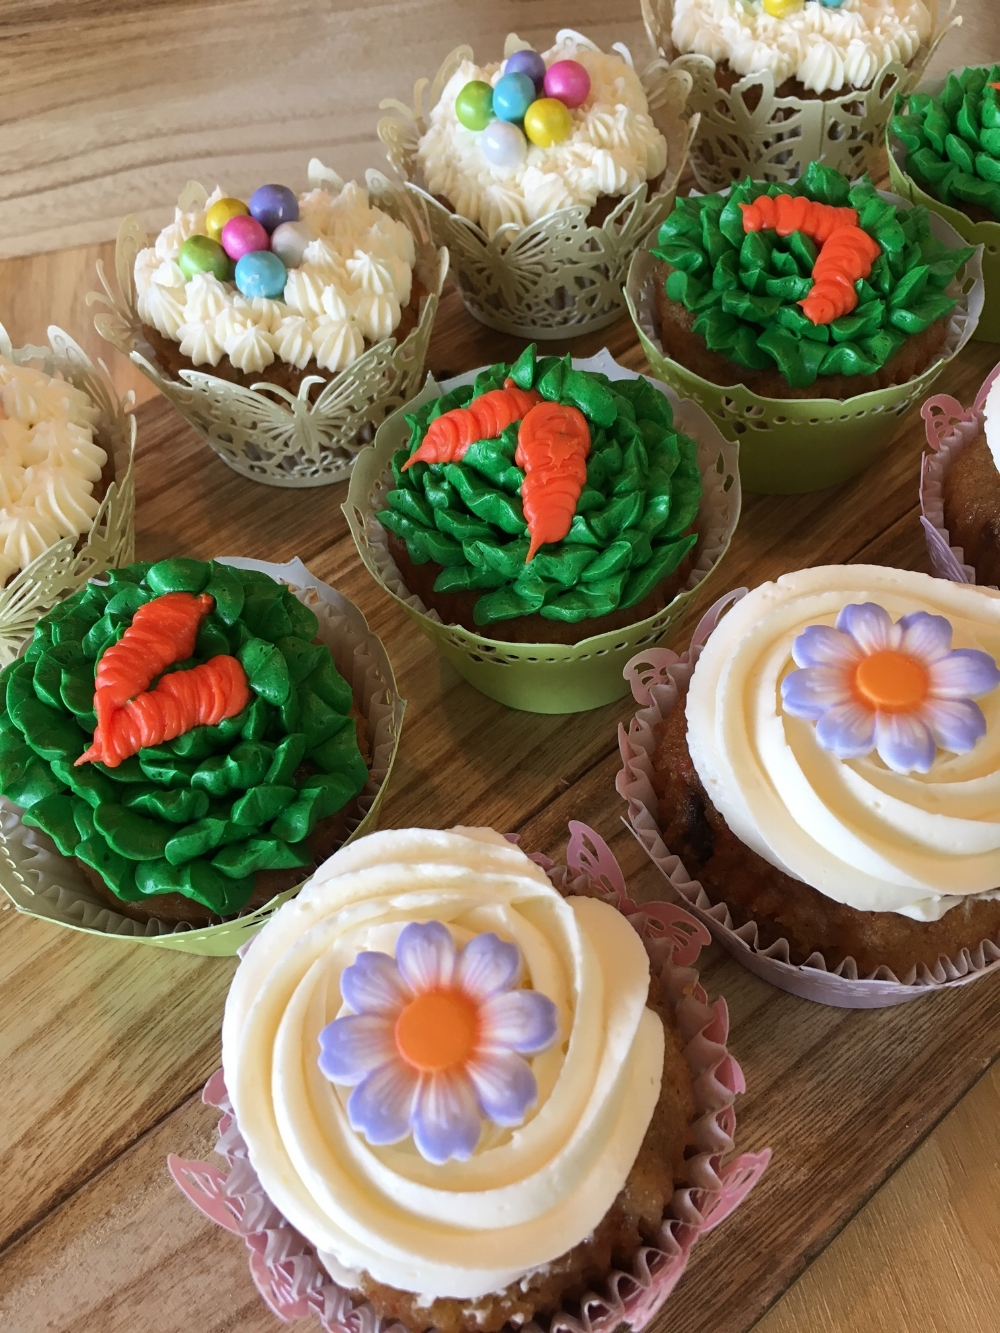 Martine's Easter Cupcakes